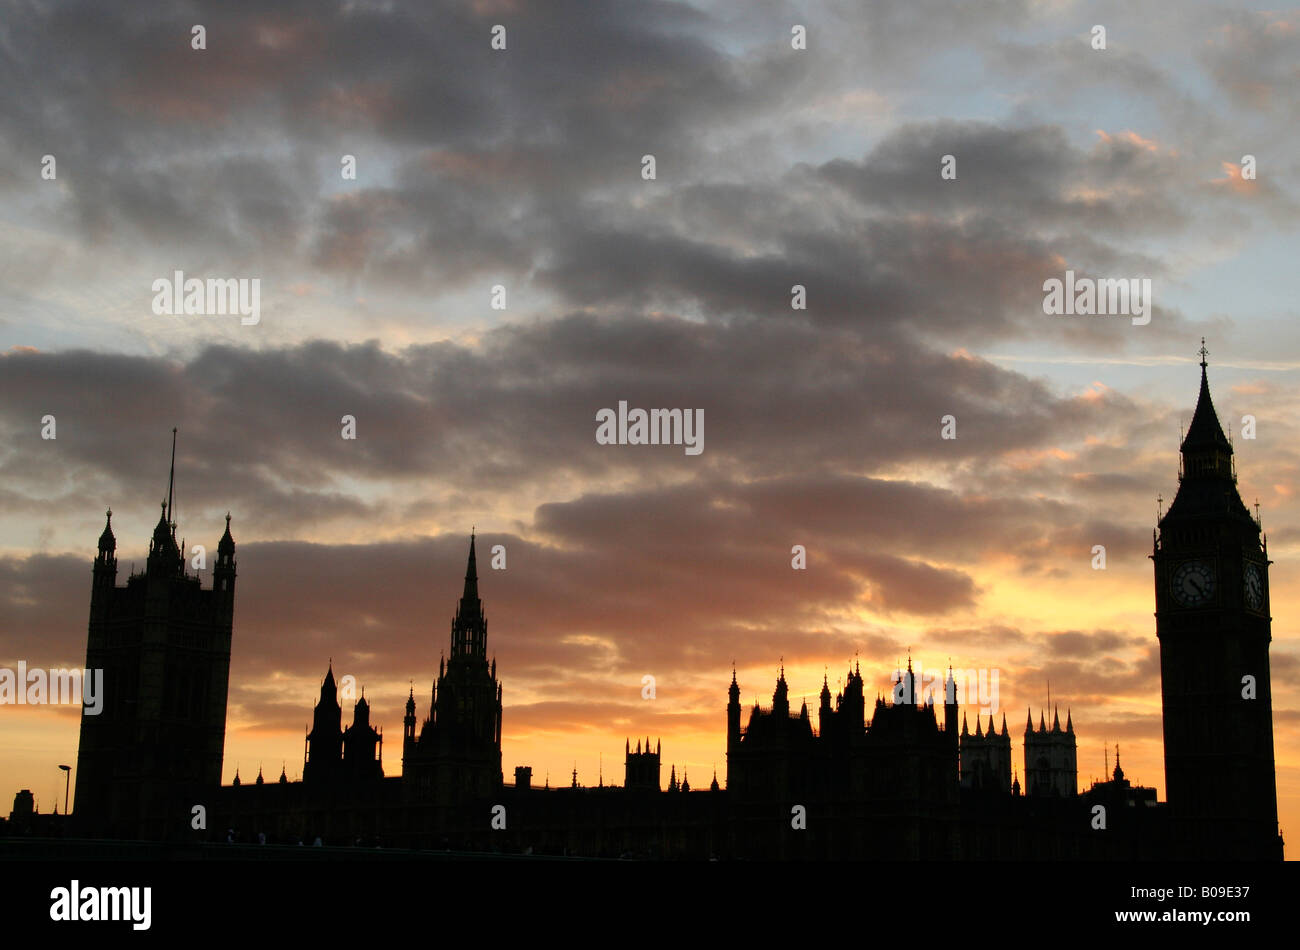 Houses of Parliament, Westminster, London, England - Stock Image